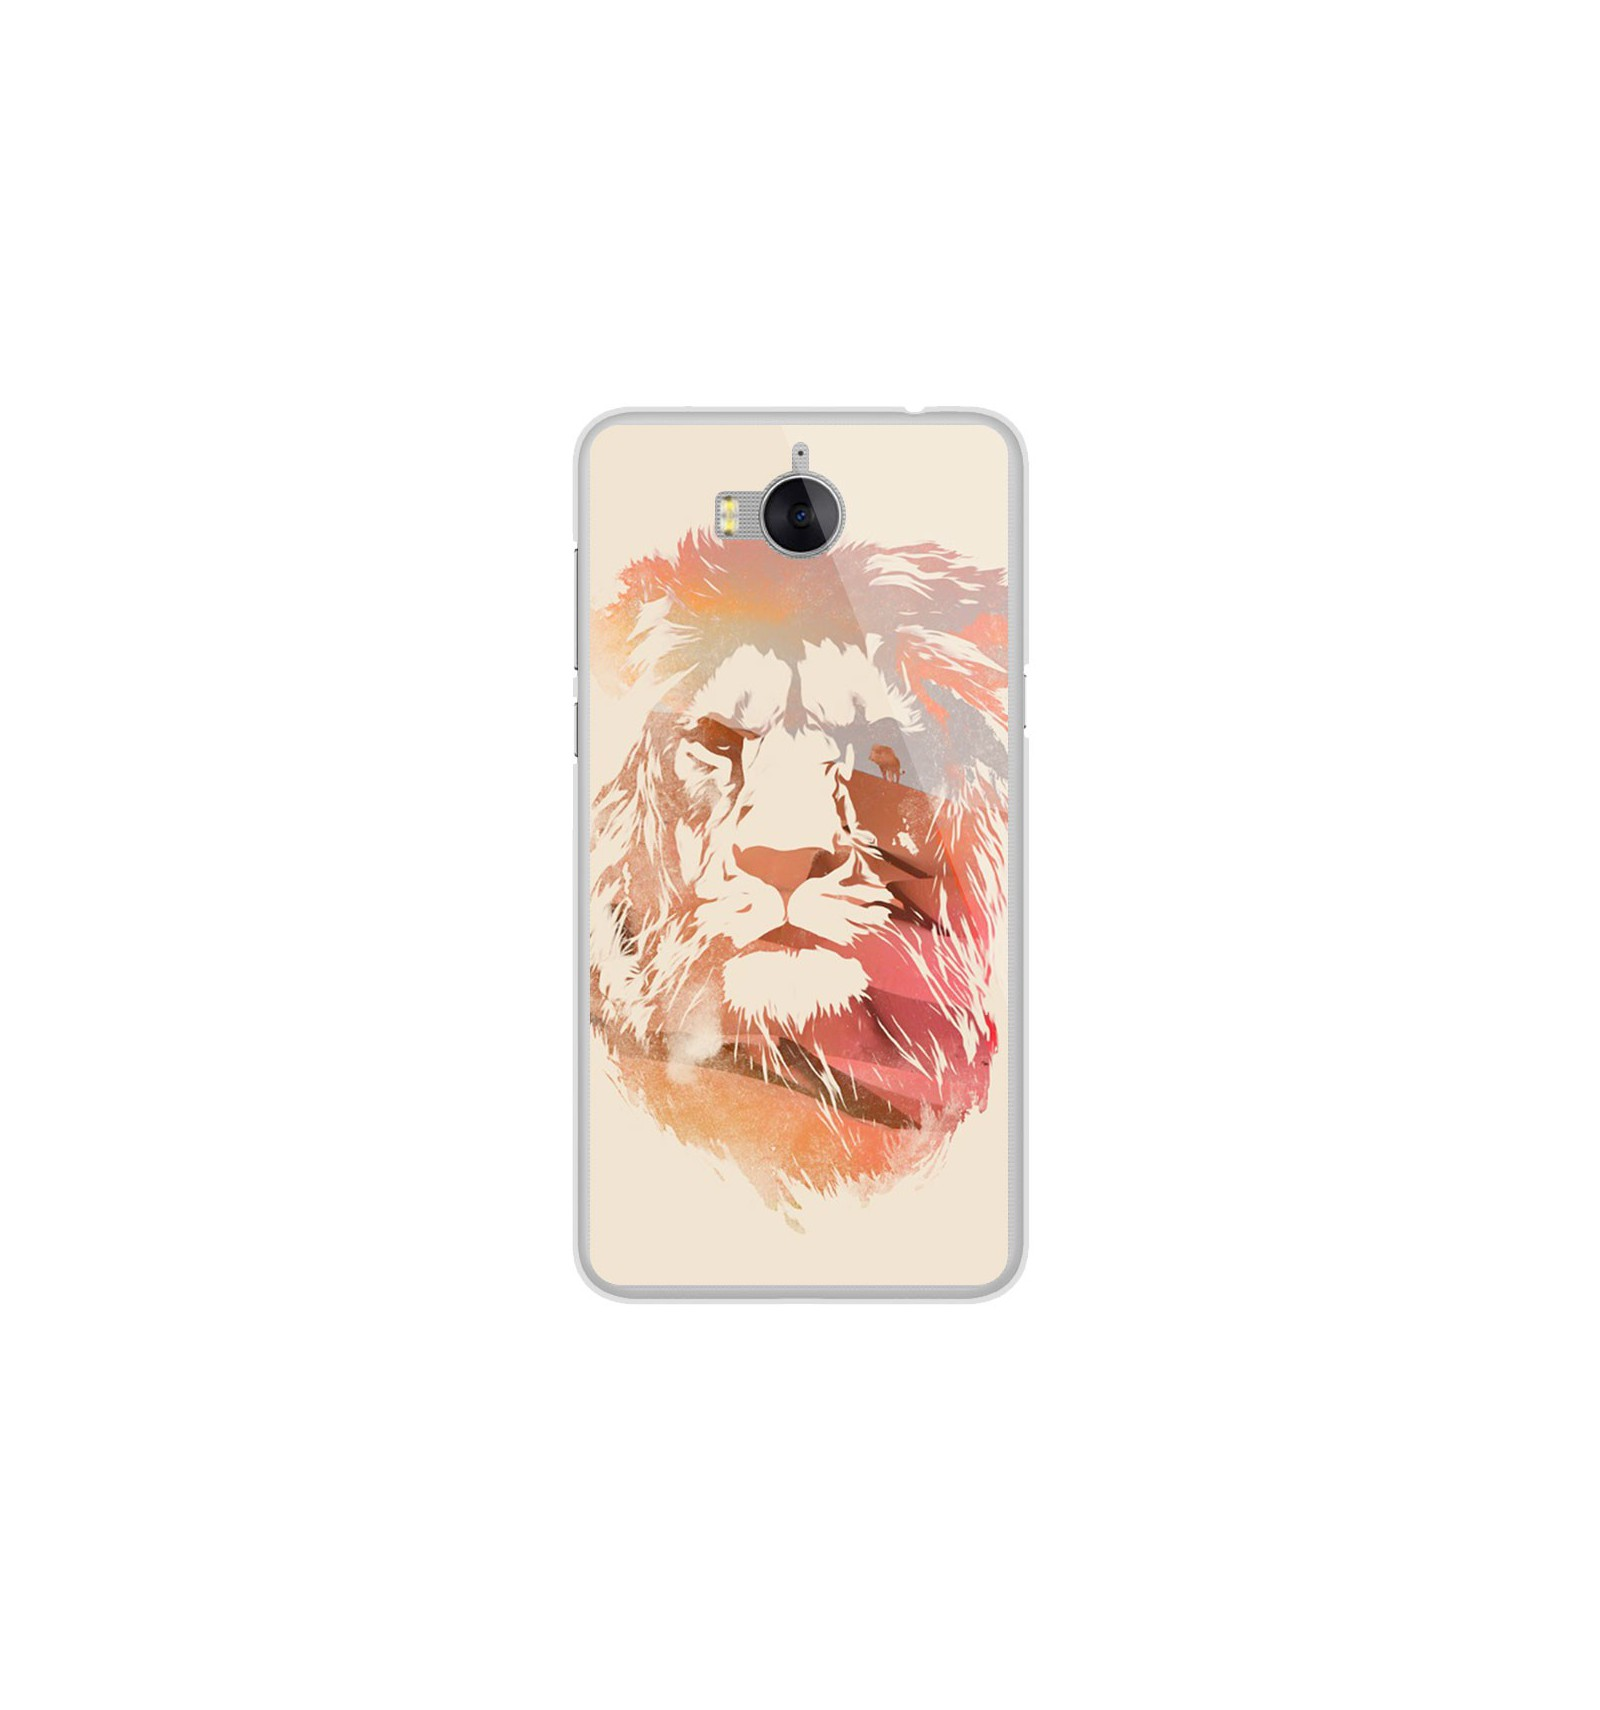 huawei y6 2017 coque lion